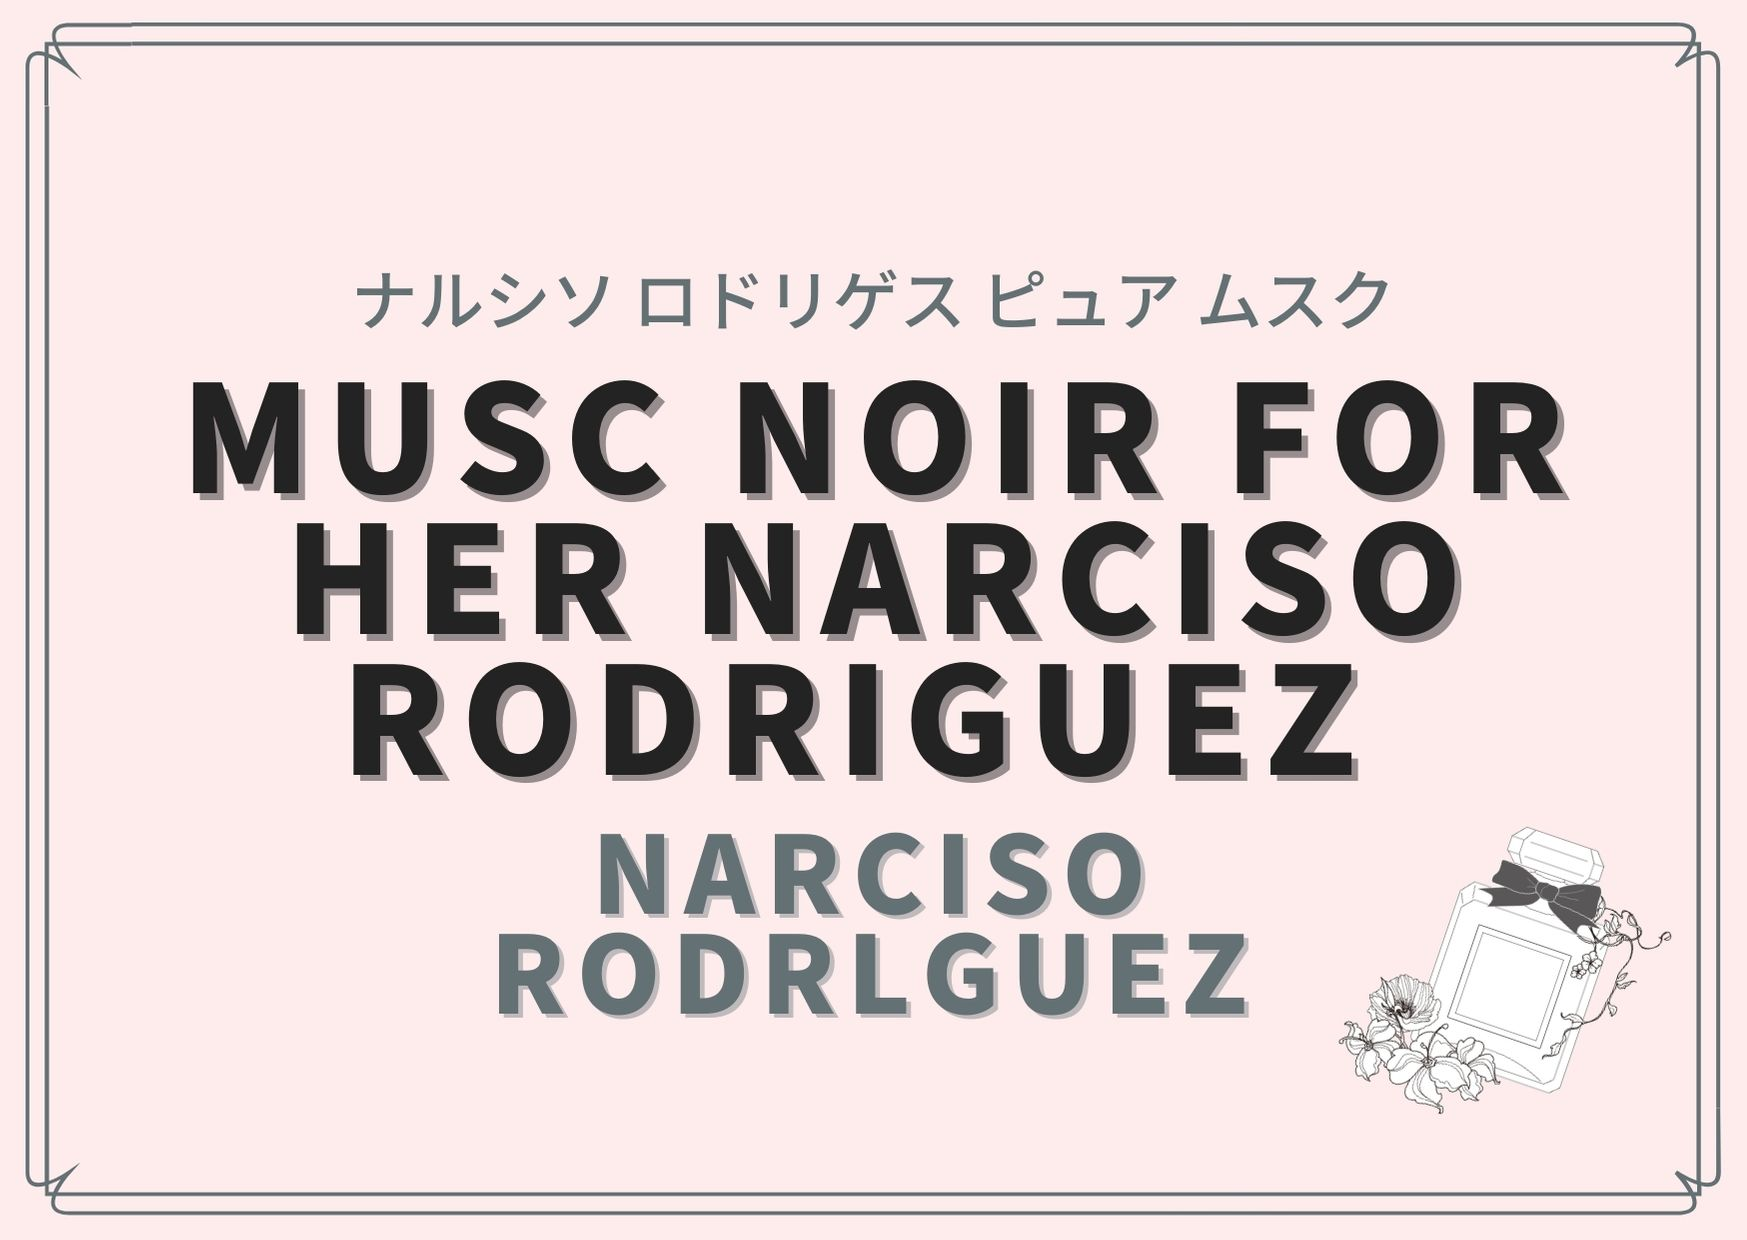 Musc Noir For Her Narciso Rodriguez  (ナルシソ ロドリゲス ピュア ムスク)/ Narciso Rodrlguez(ナルシソ ロドリゲス)